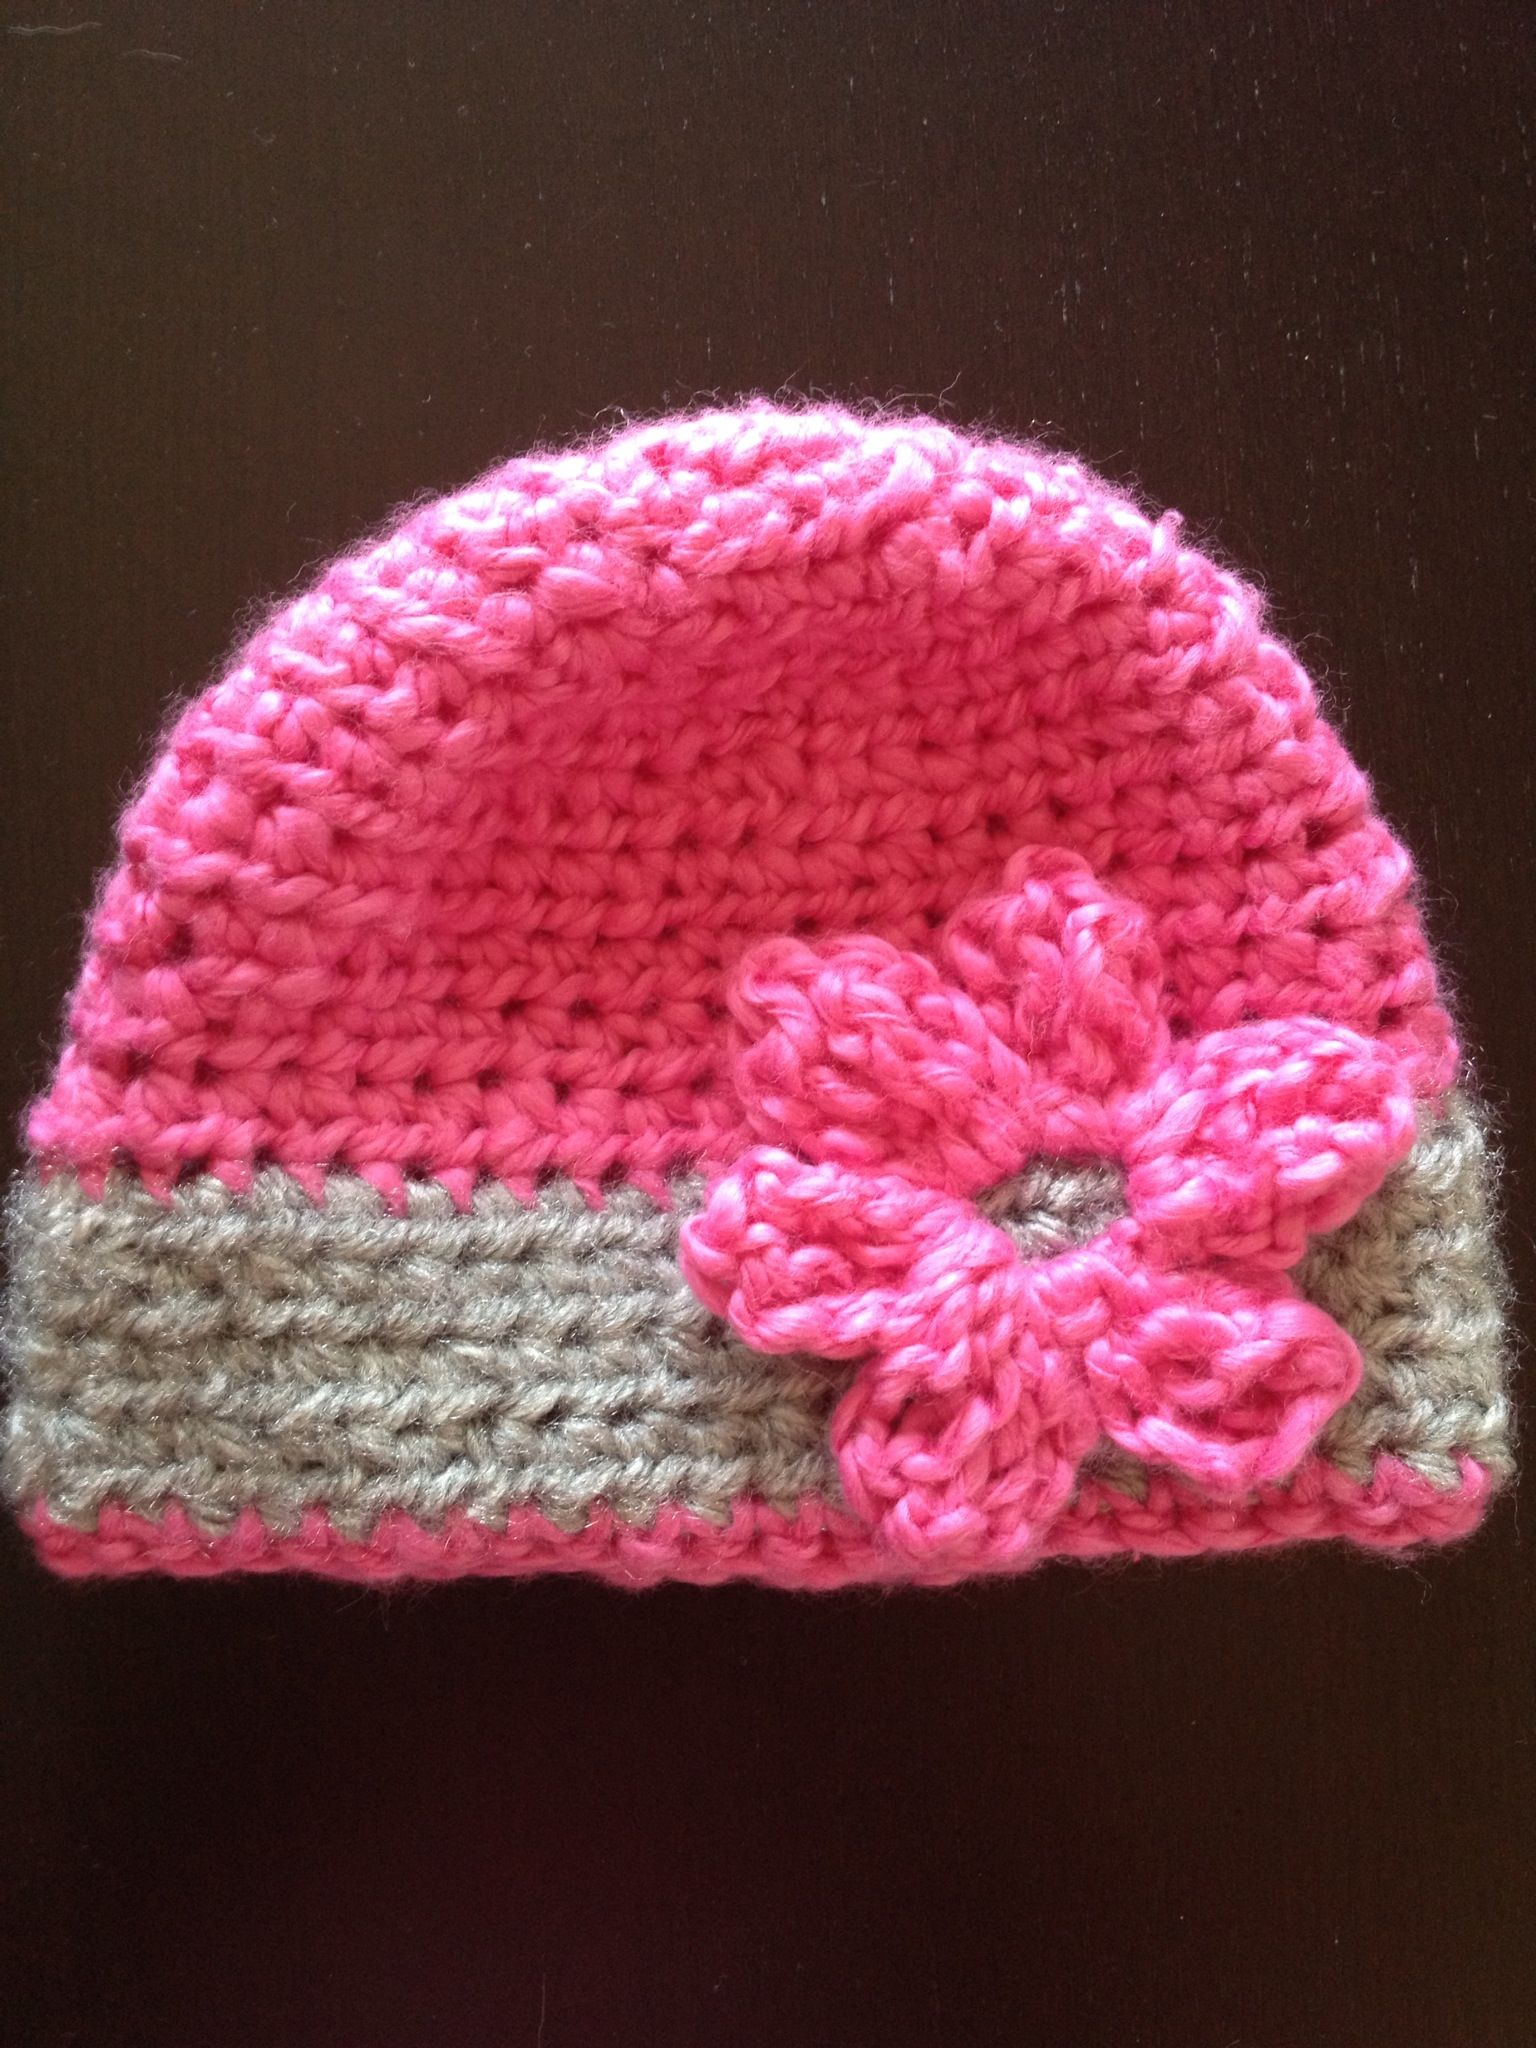 Crocheted hat with flower crochet Pinterest